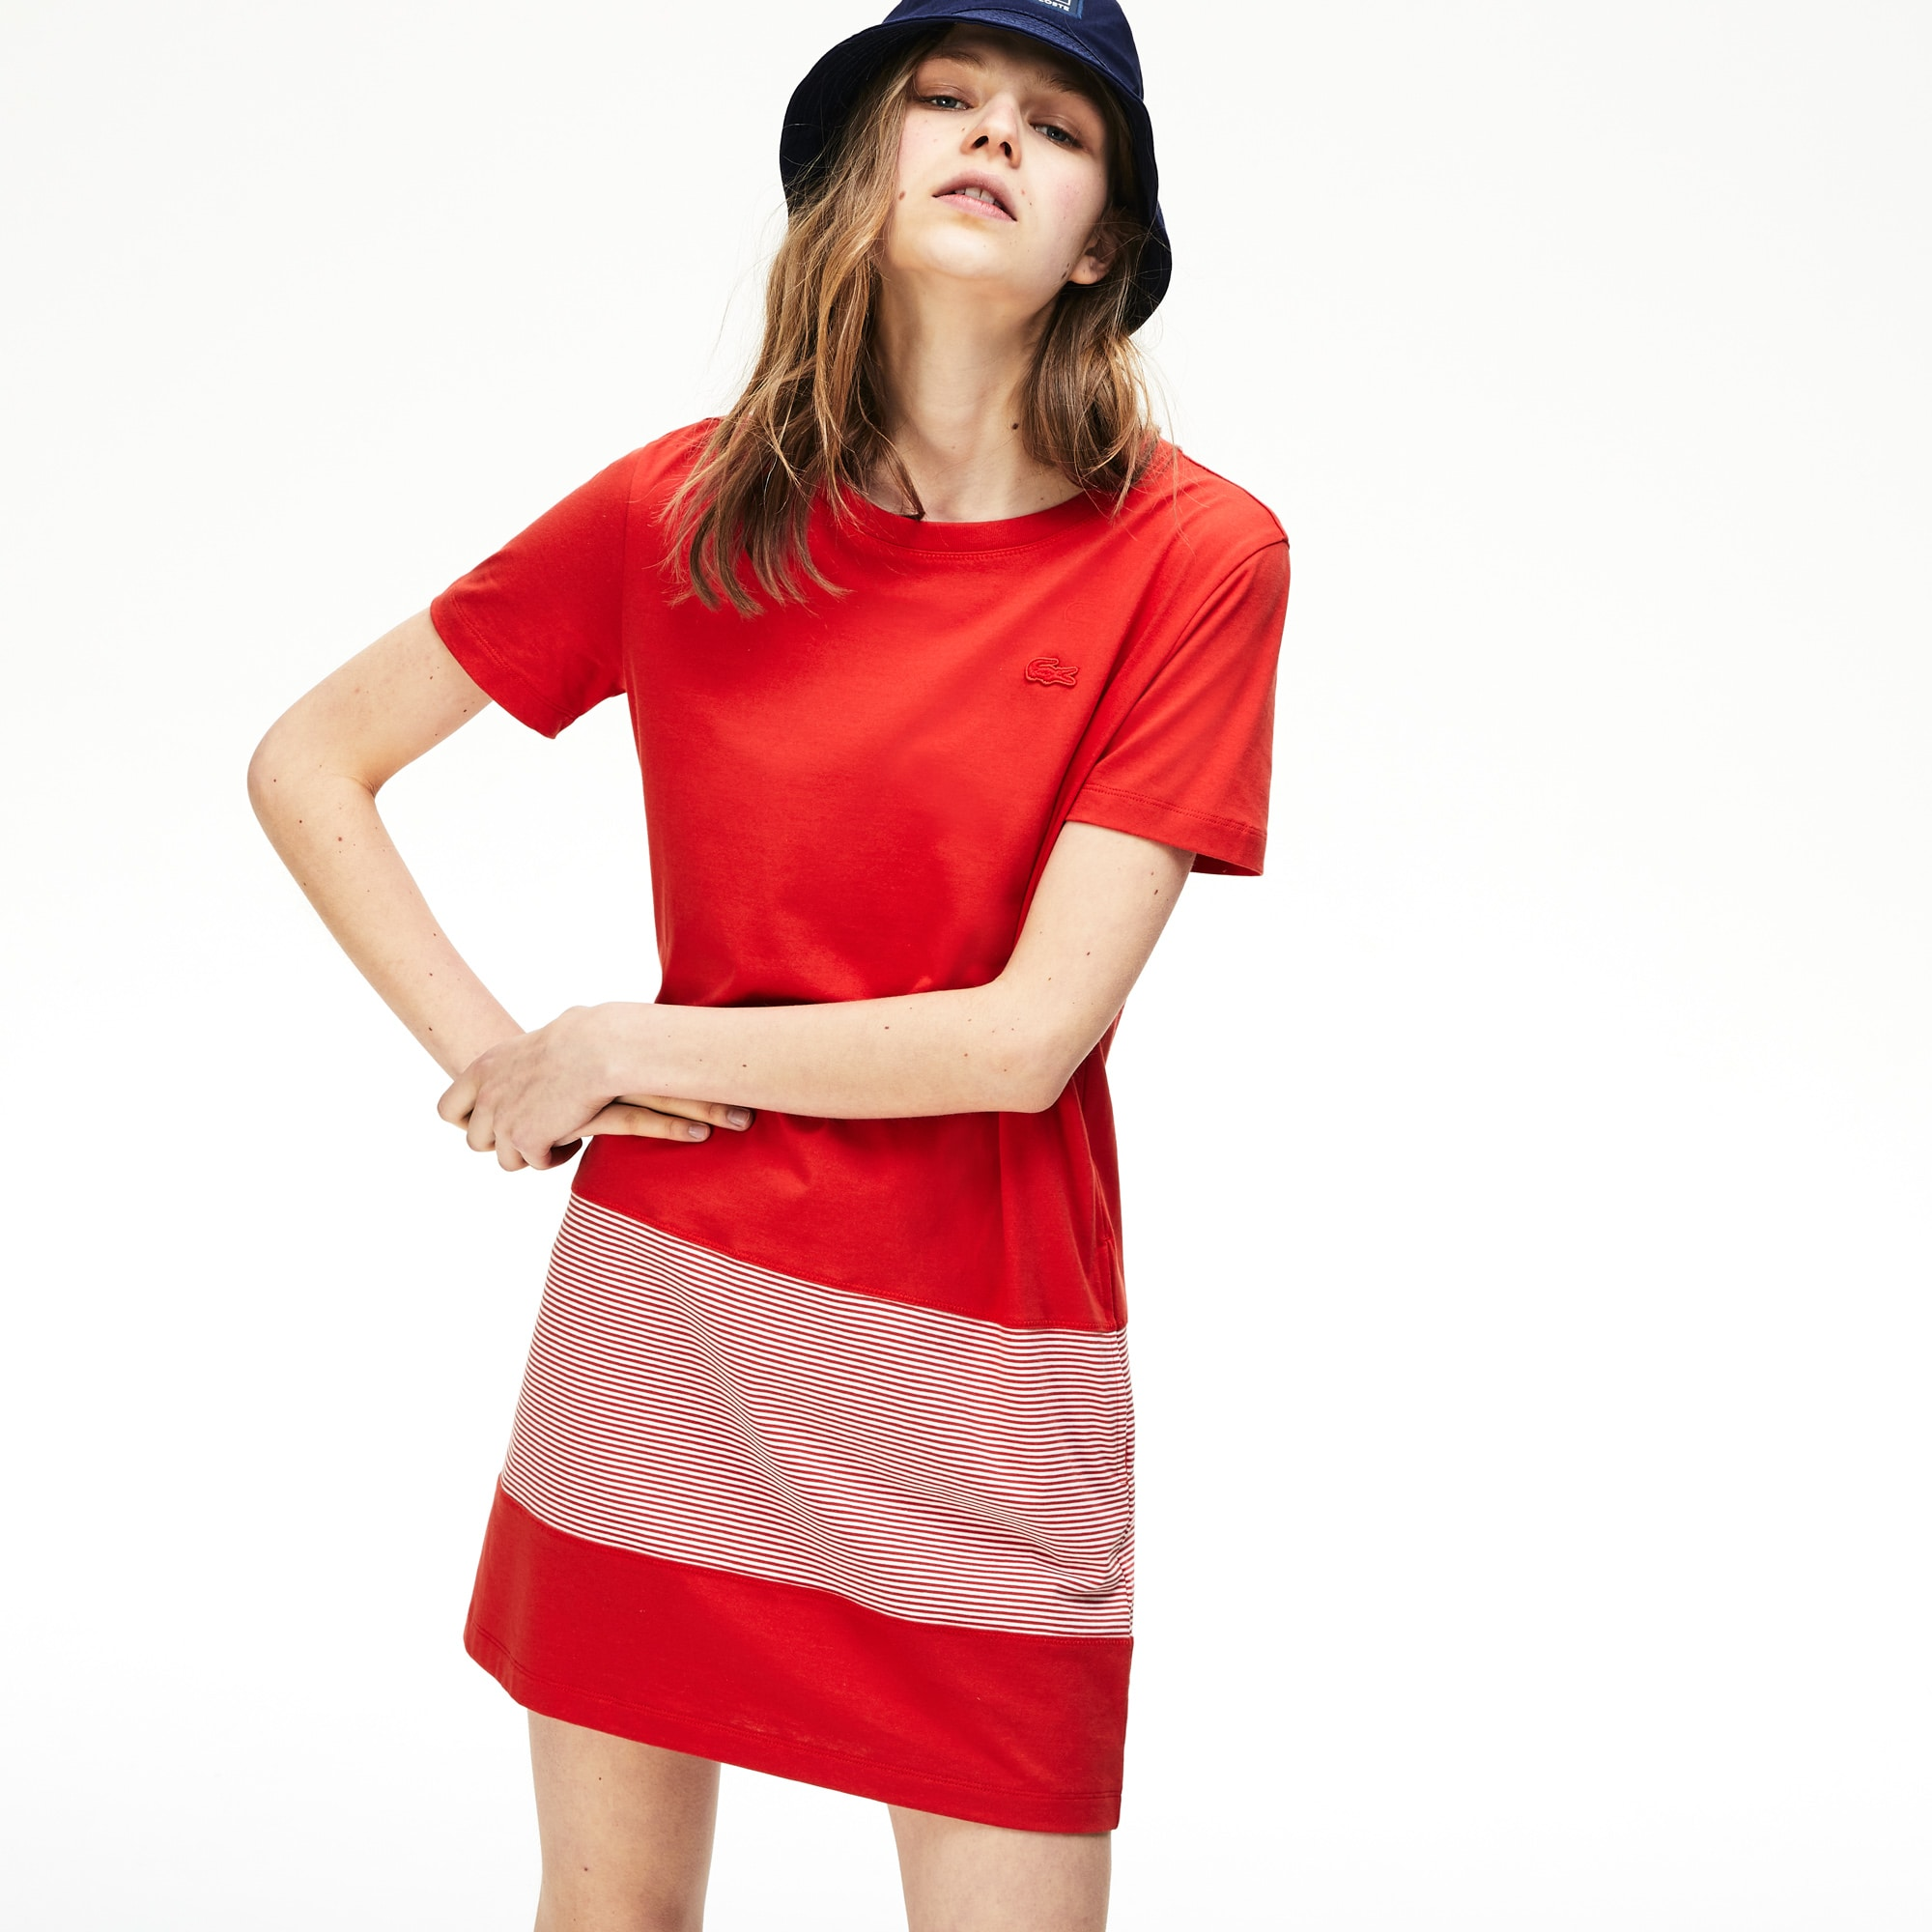 Women's Crew Neck Cotton T-shirt Dress